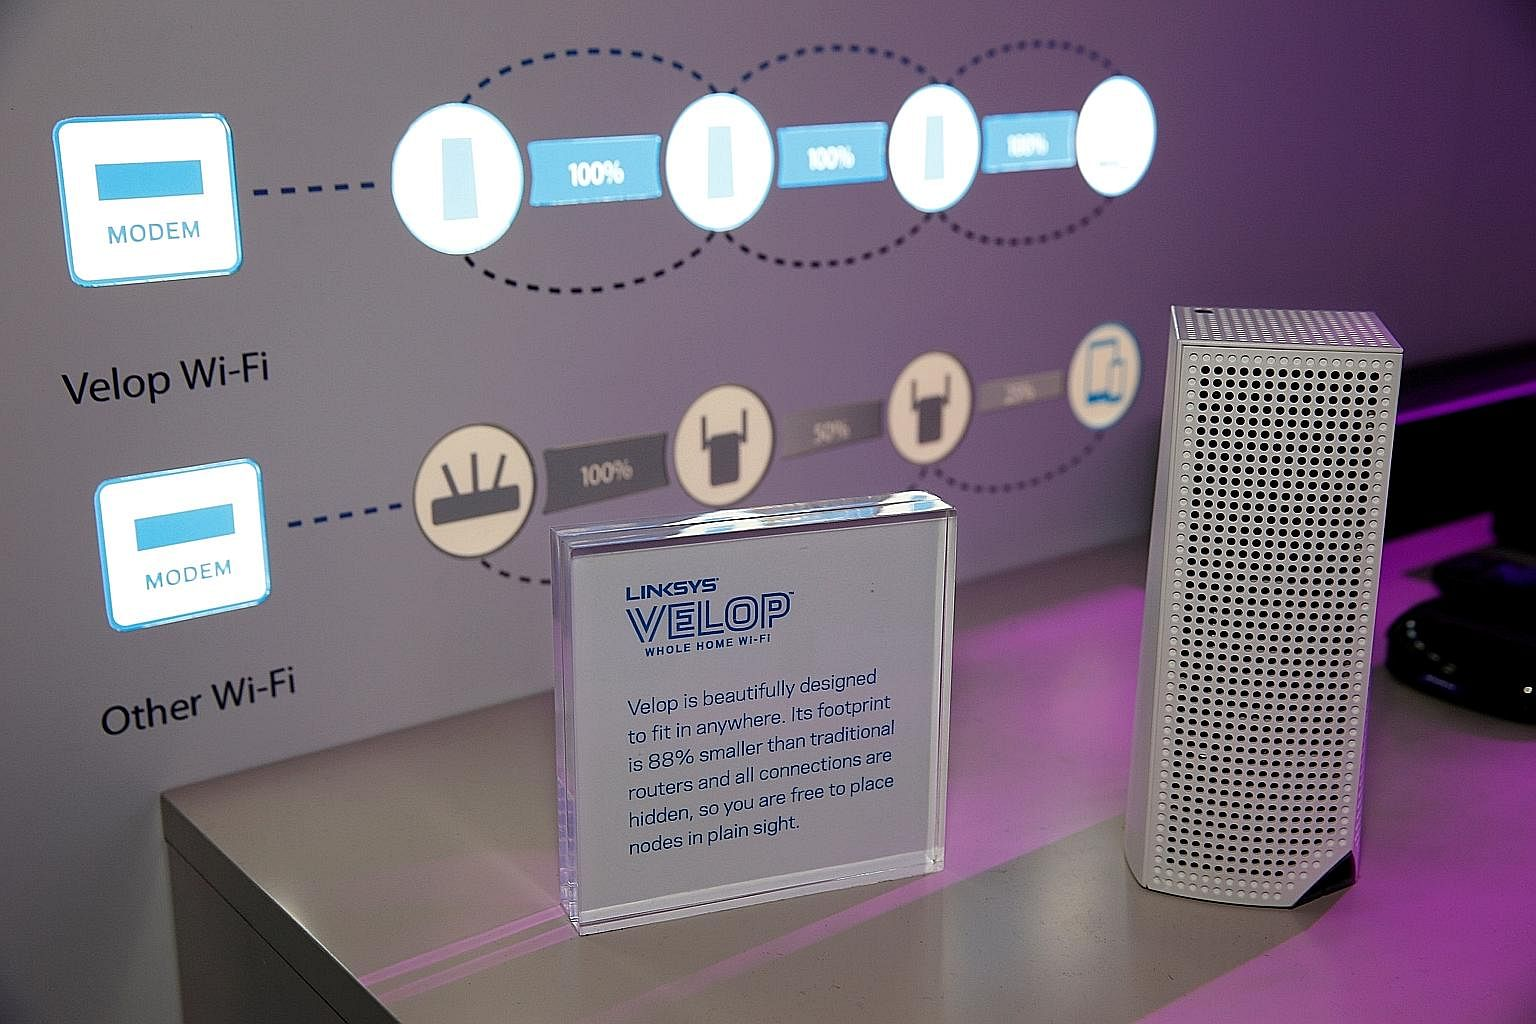 A Velop modular Wi-Fi node displayed in the Linksys booth at CES 2017.